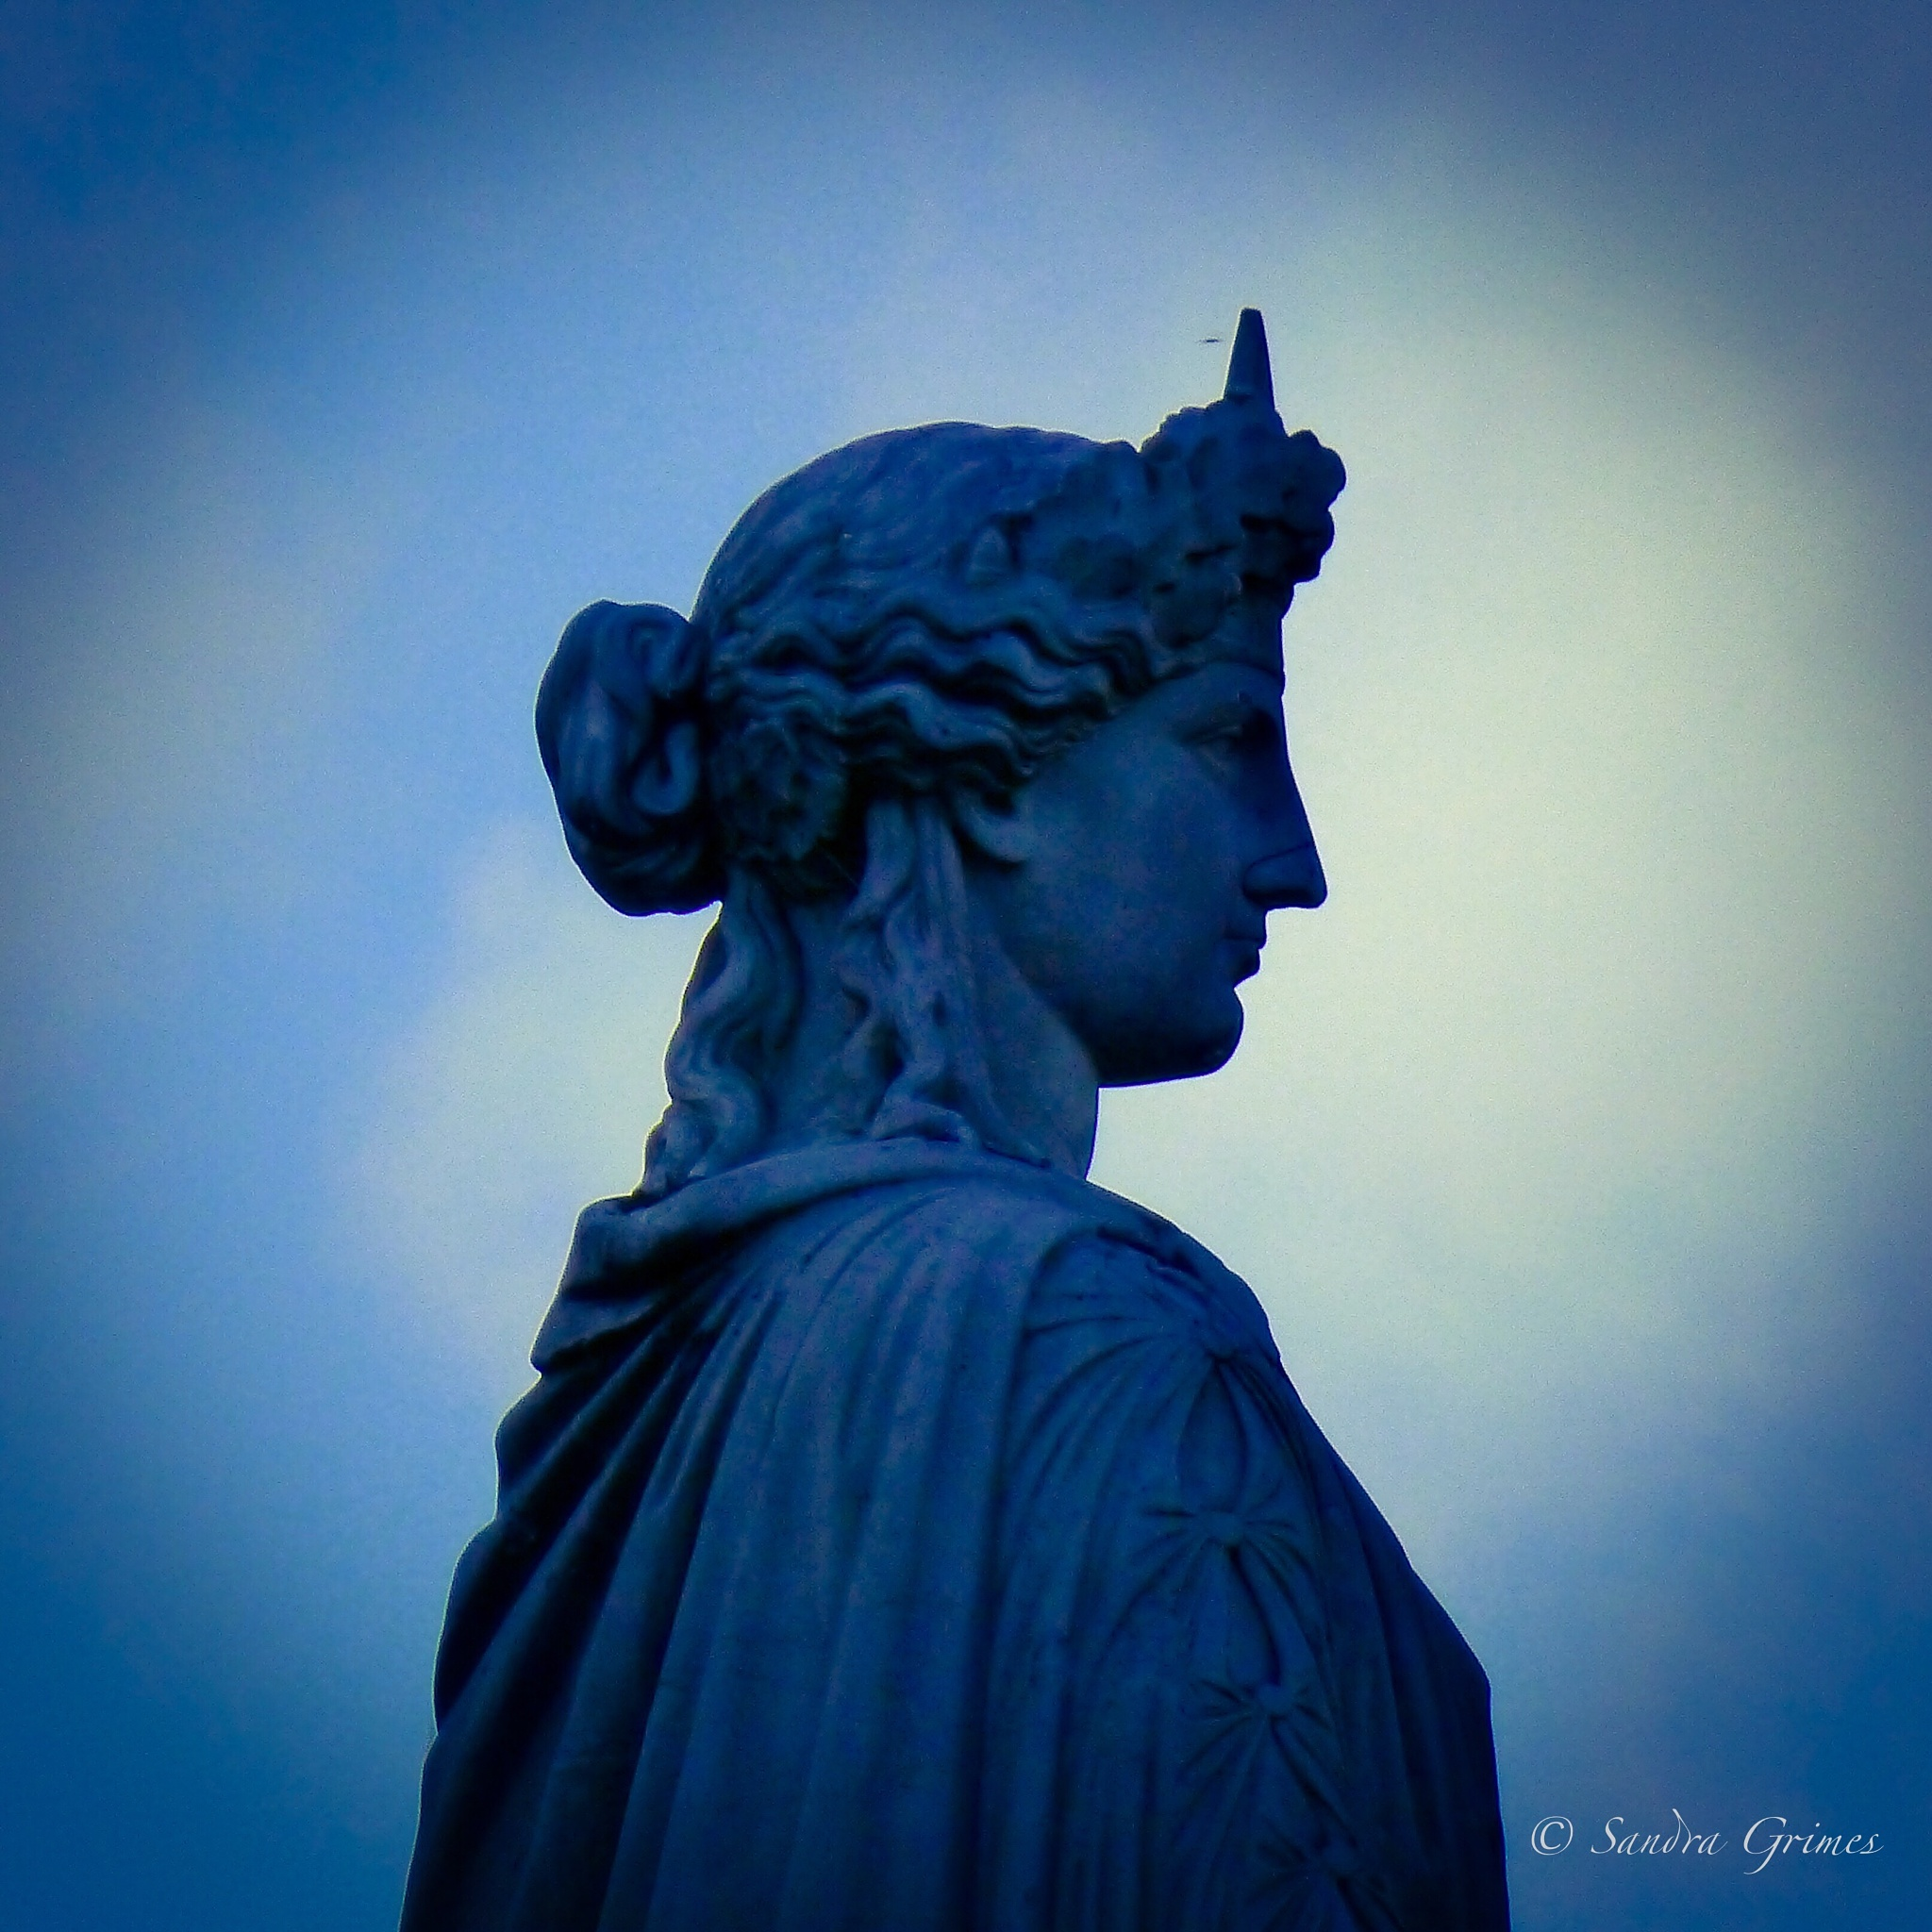 French Statue of Liberty on River Seine by TrixieGirl5192